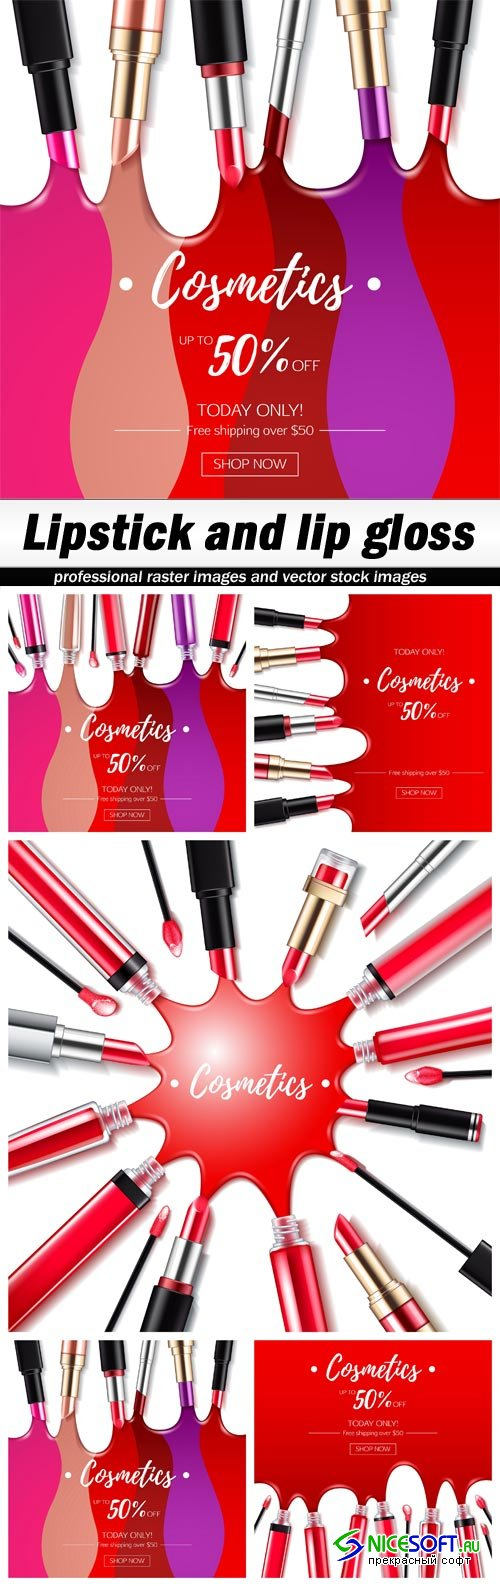 Lipstick and lip gloss - 5 EPS